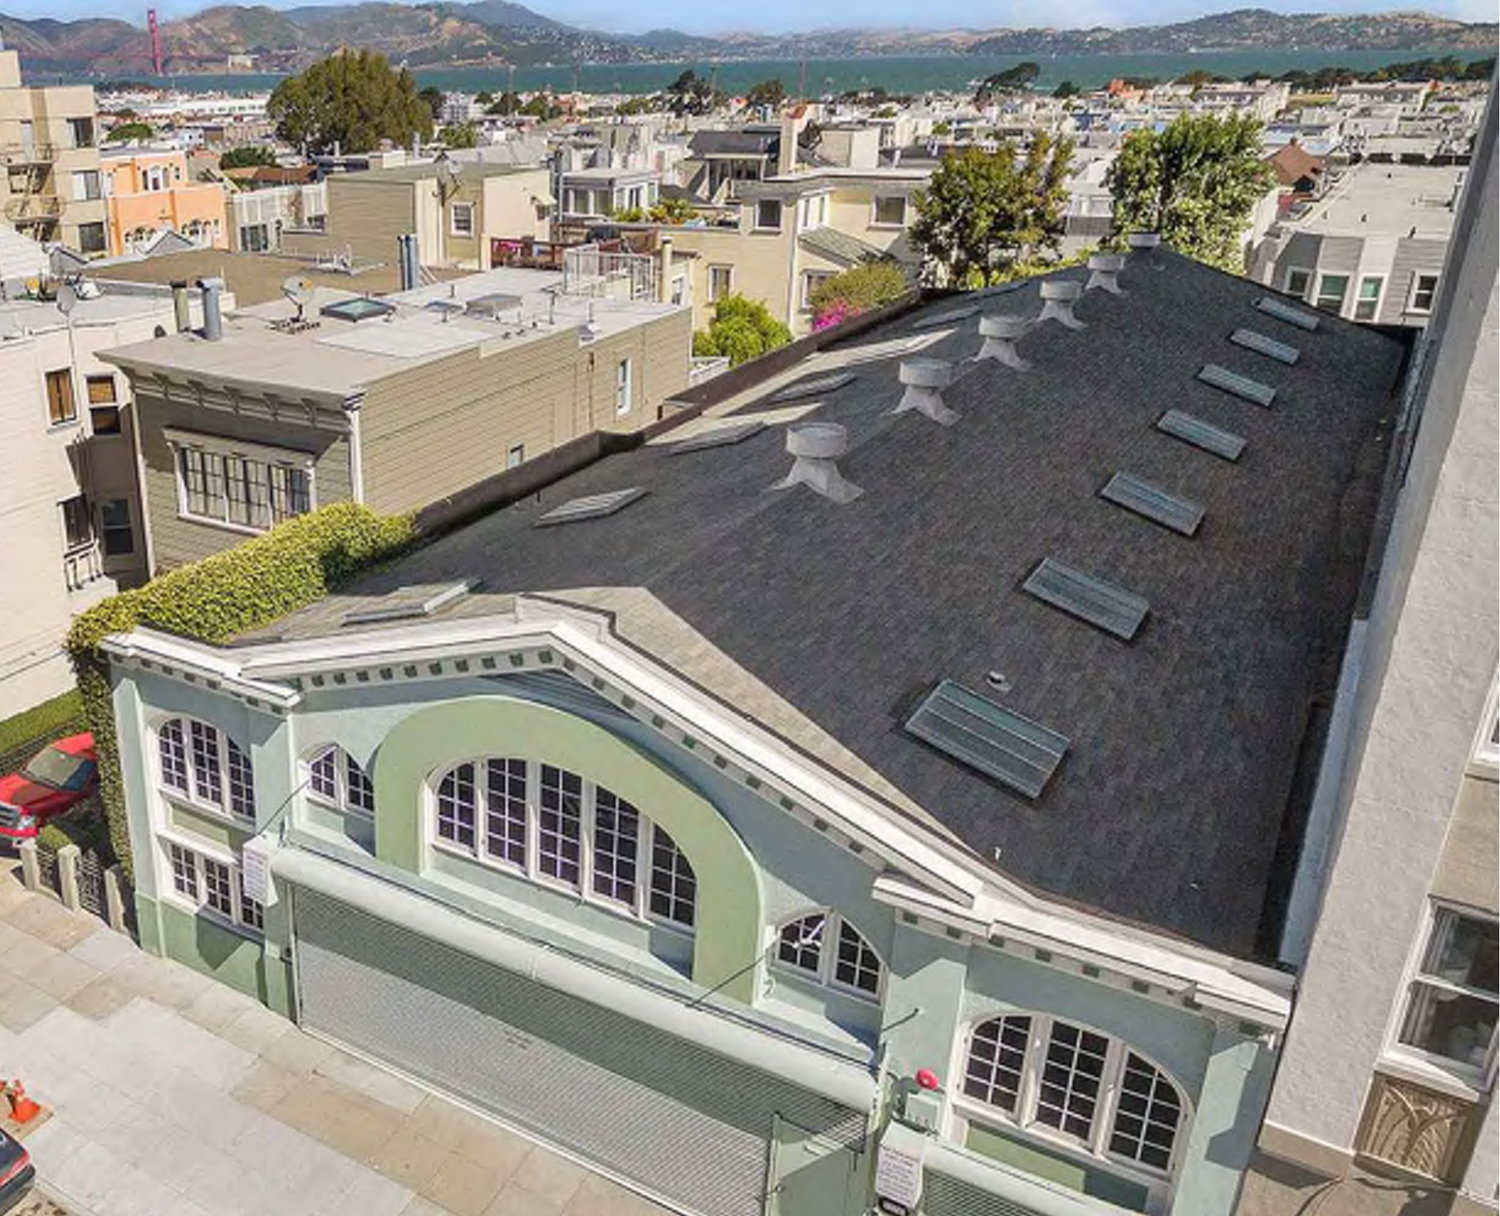 1776 Green Street existing structure, image via Sutro Architects